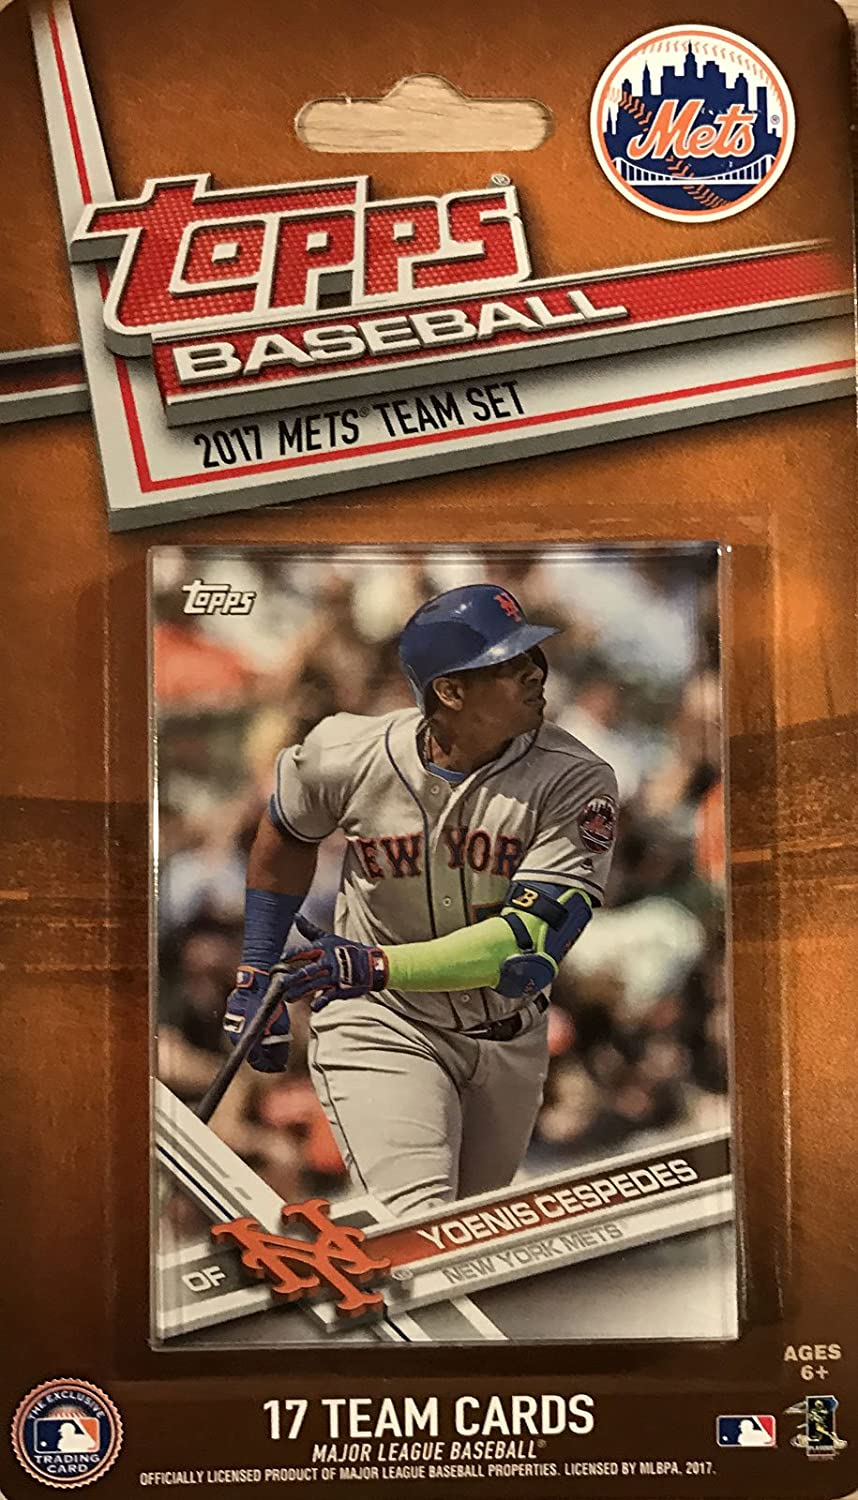 New York Mets 2017 Topps Factory Sealed Special Edition 17 Card Team Set with David Wright Matt Harvey and Yoenis Cespedes Plus